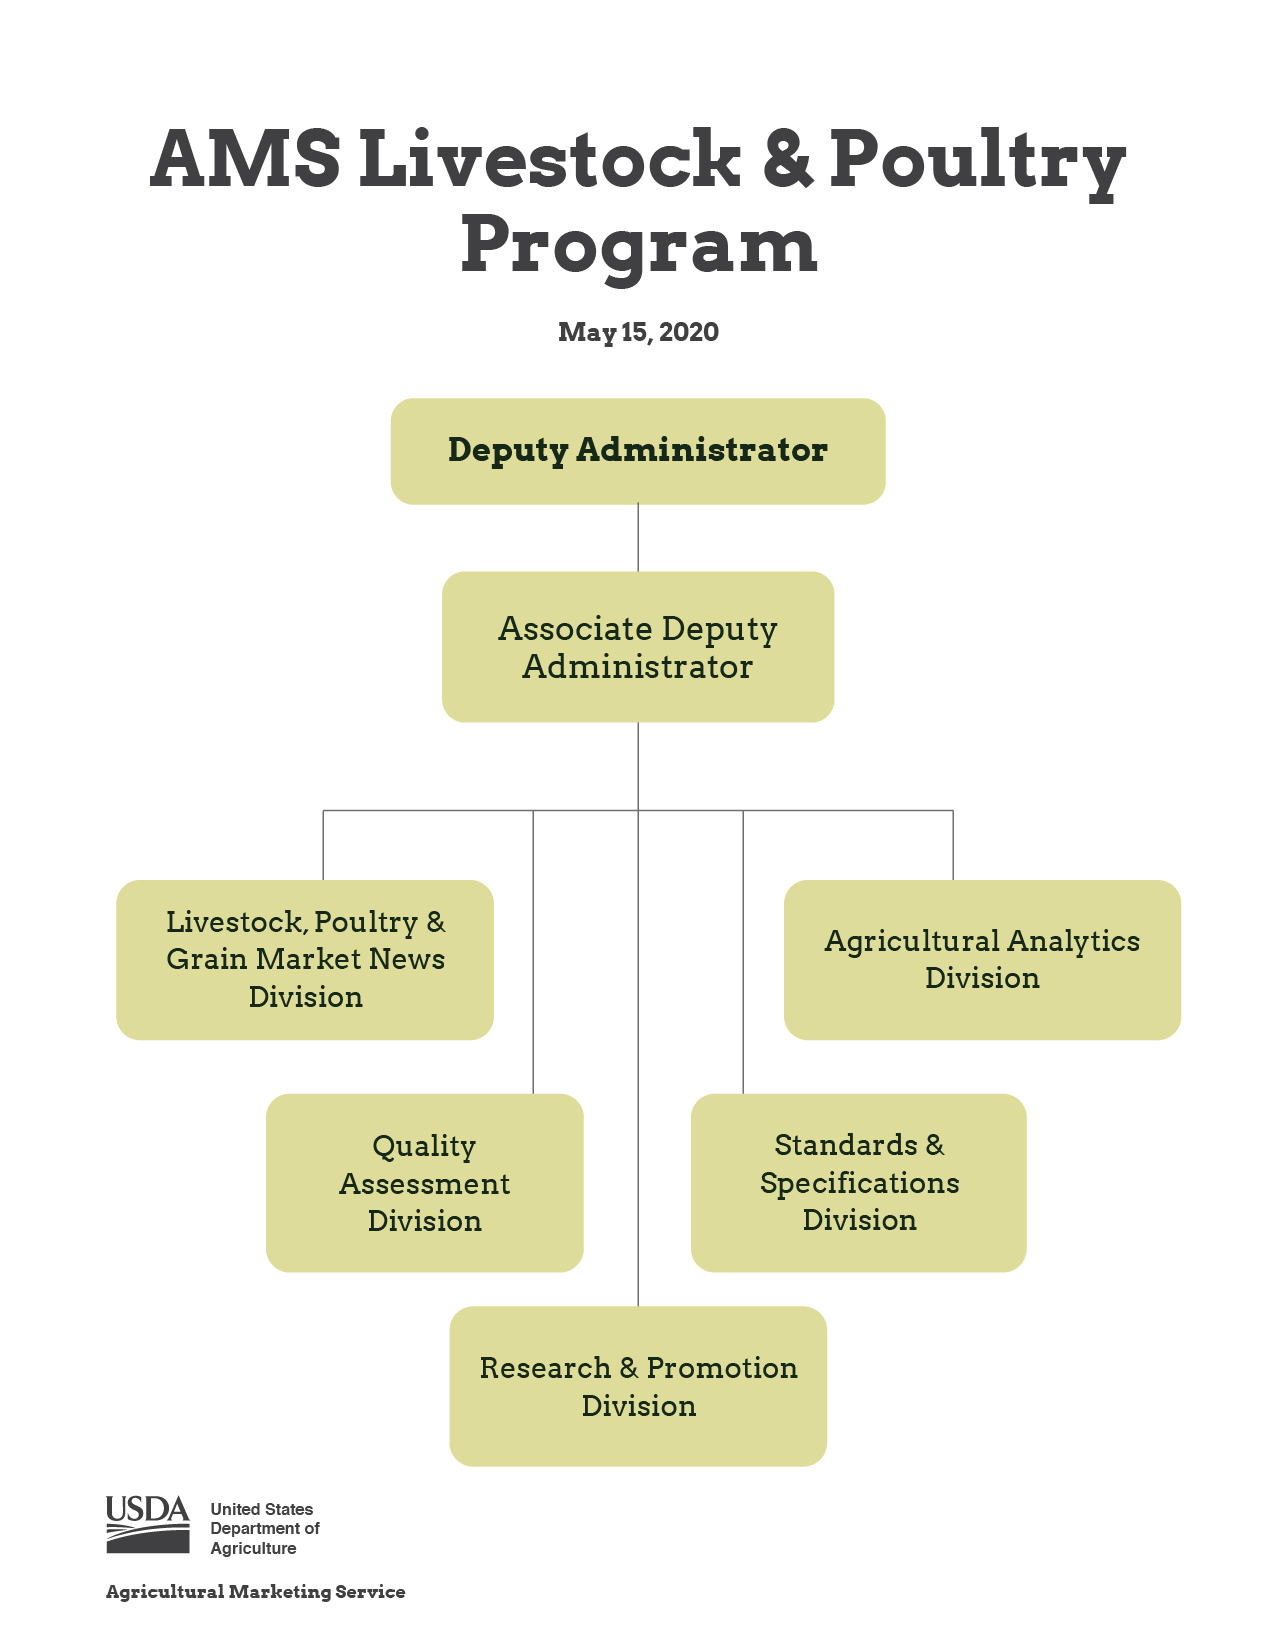 Livestock and Poultry Program | Agricultural Marketing Service